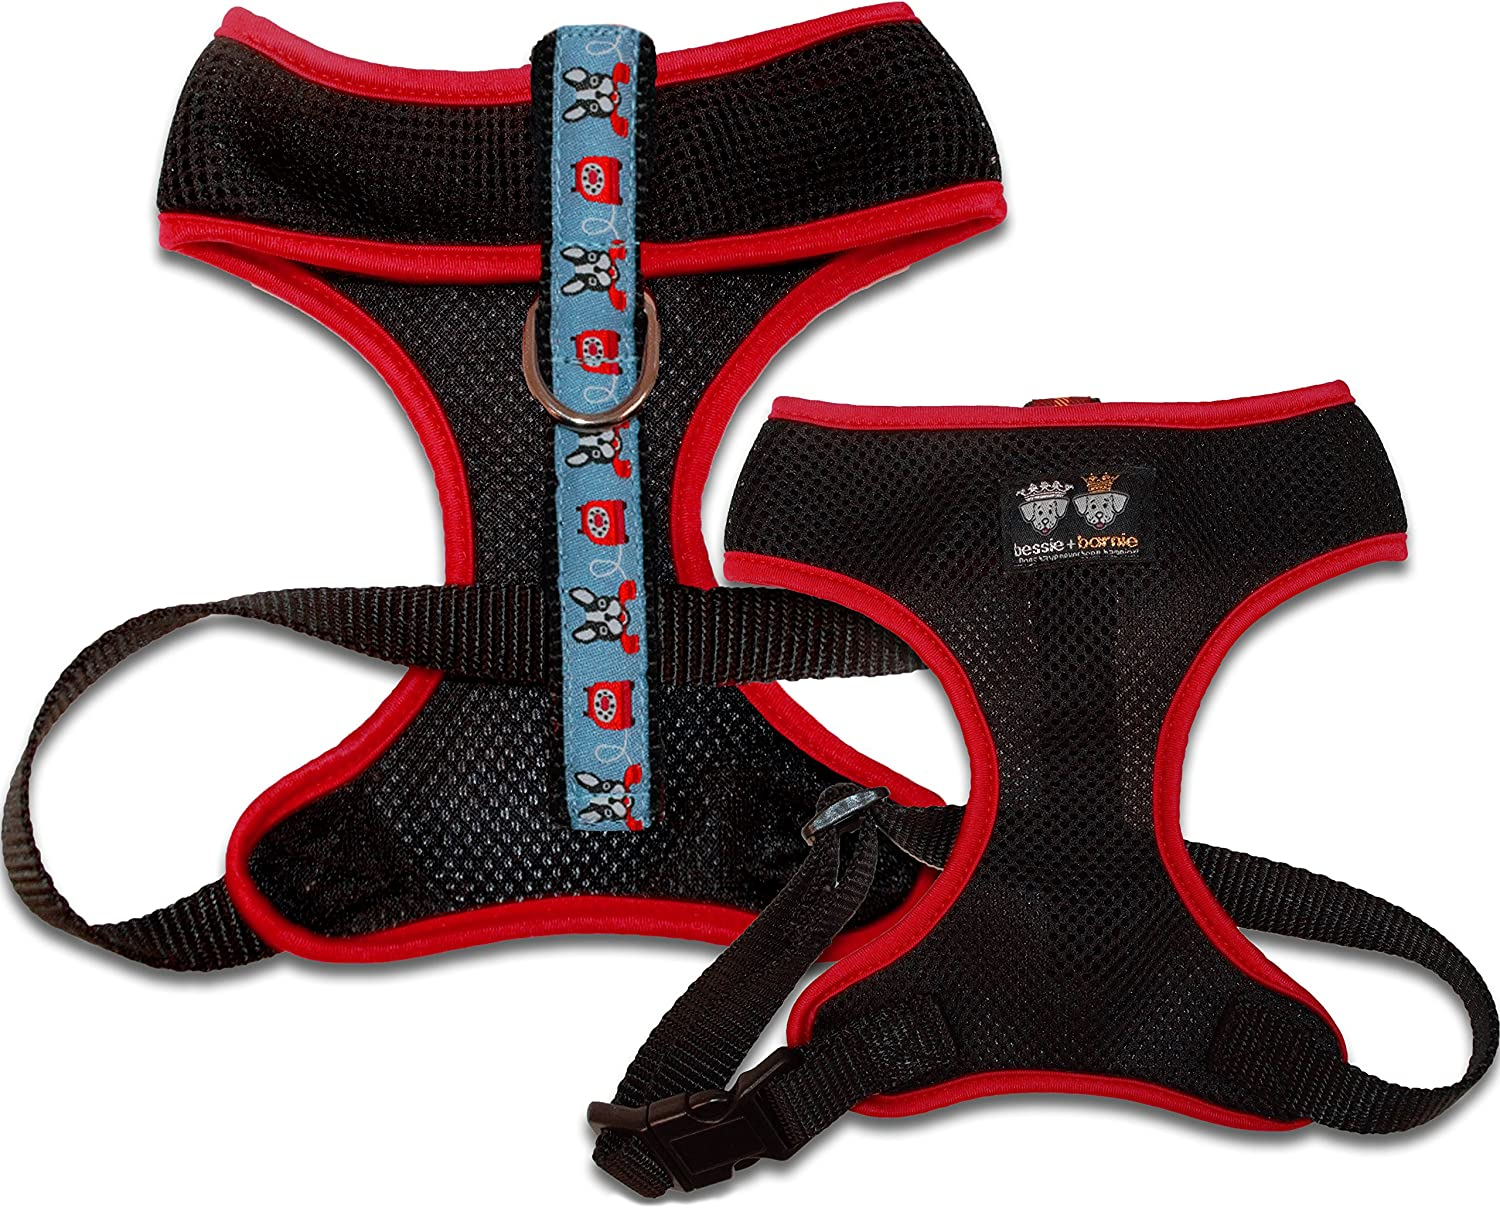 Bessie and Barnie Signature Air Comfort Mesh Luxury Black Doggie Dials Red Pet Dog Durable Adjustable Harness (Multiple Sizes)